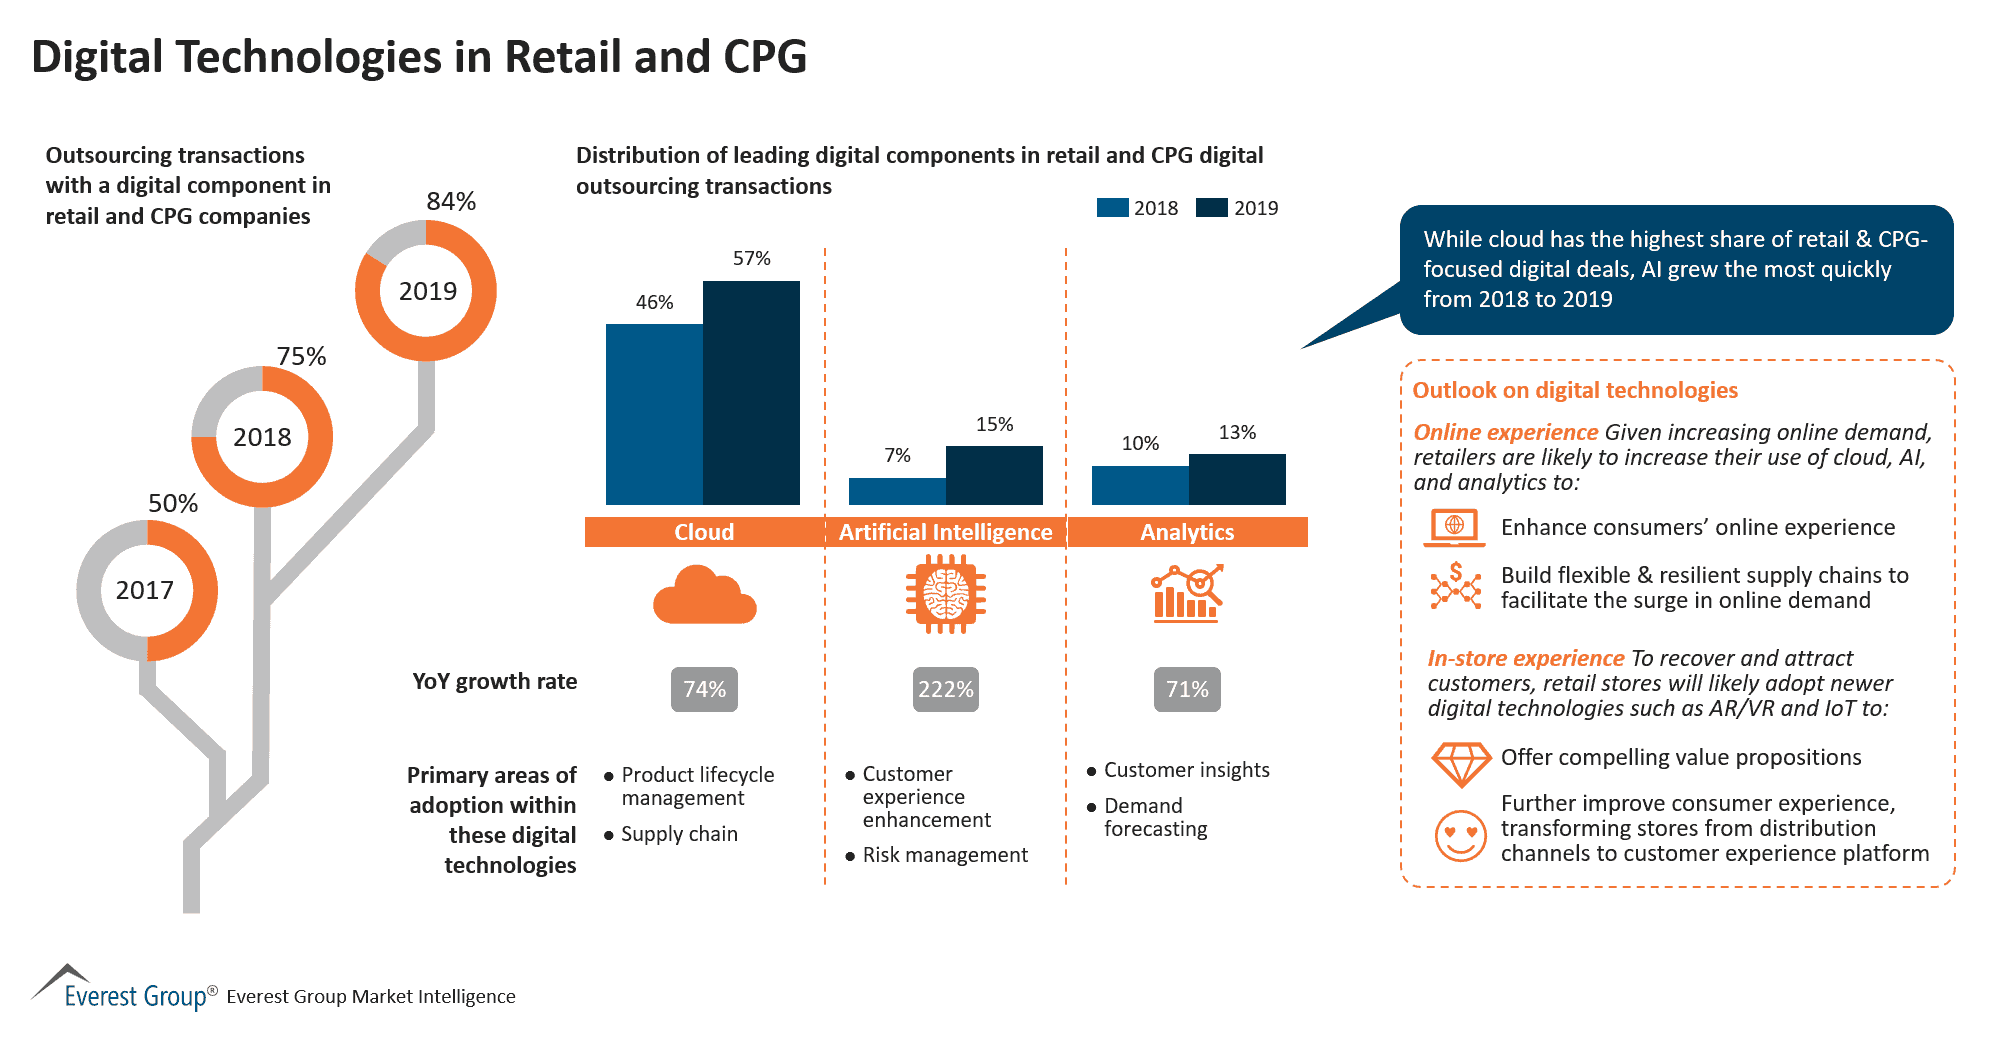 Digital Technologies in Retail and CPG